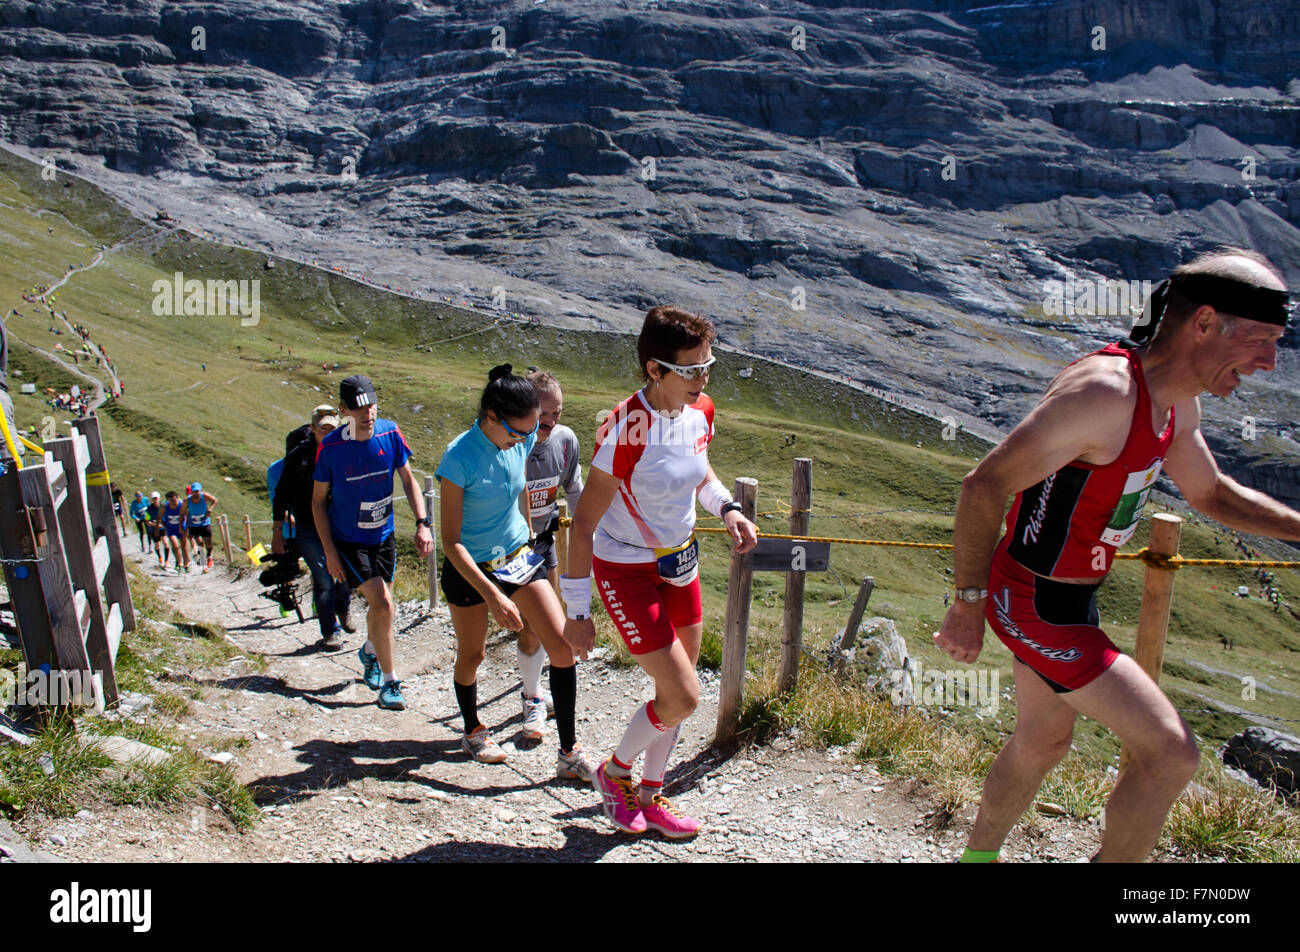 Runners on glacier moraine and last uphill stretch during 2015 Jungfrau Mountain Marathon race from Interlaken to - Stock Image